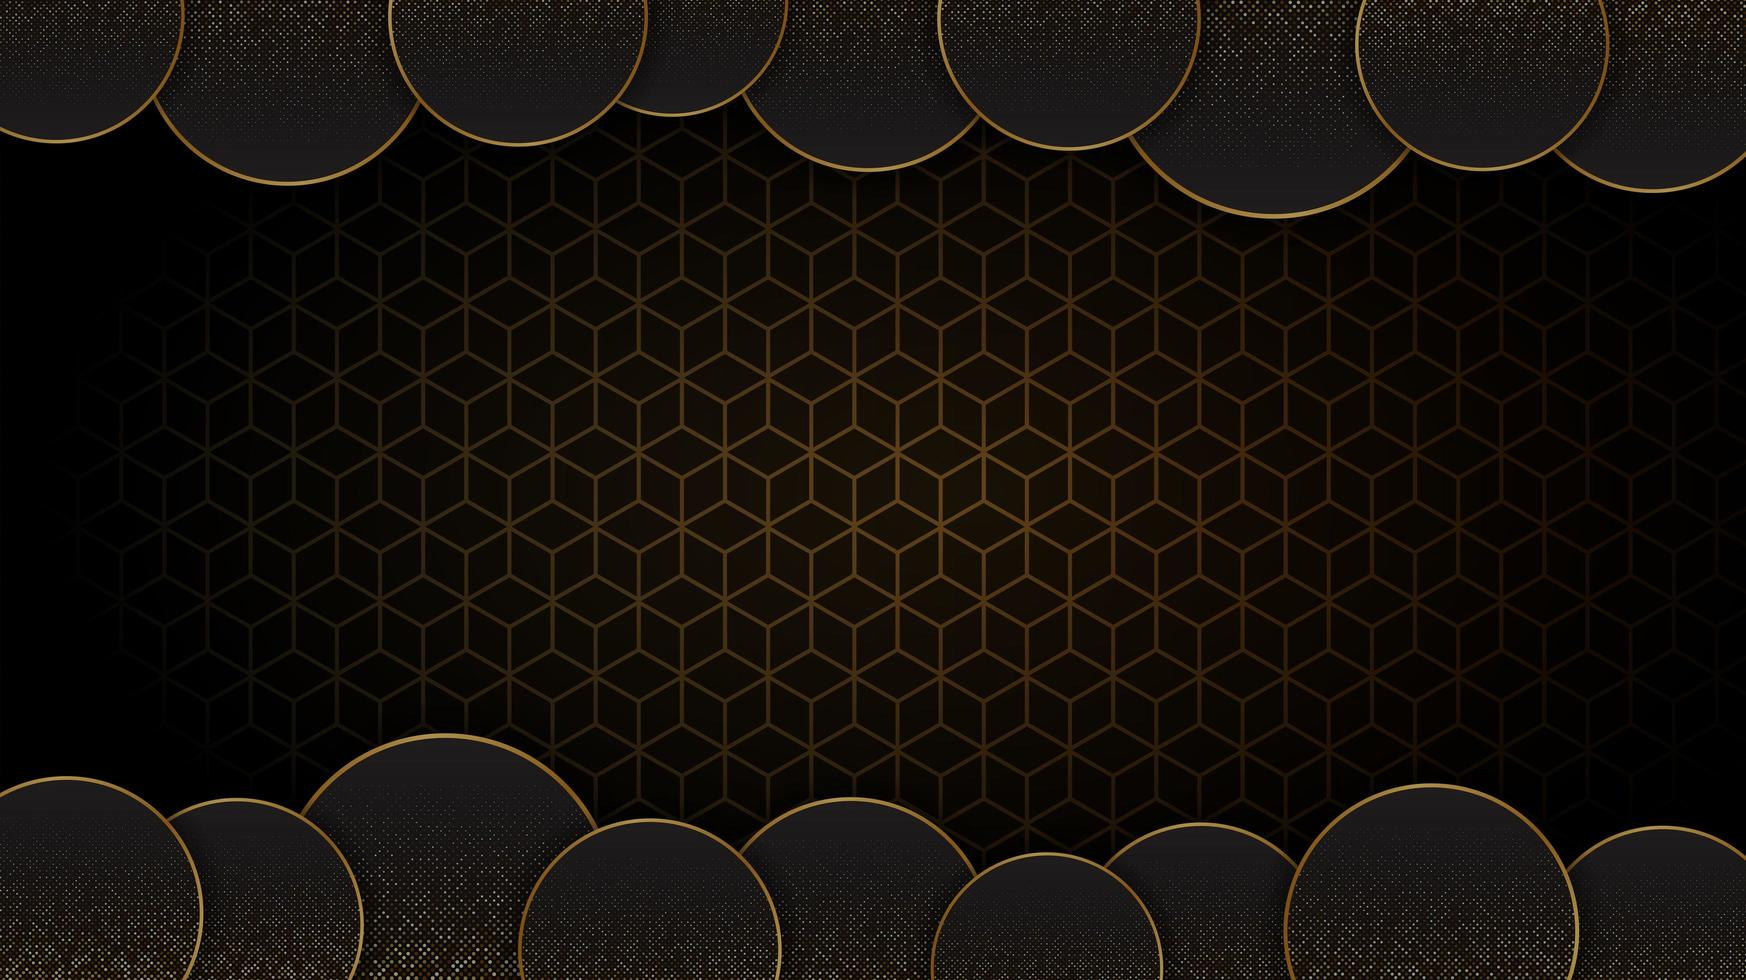 Black and Gold circular abstract background vector